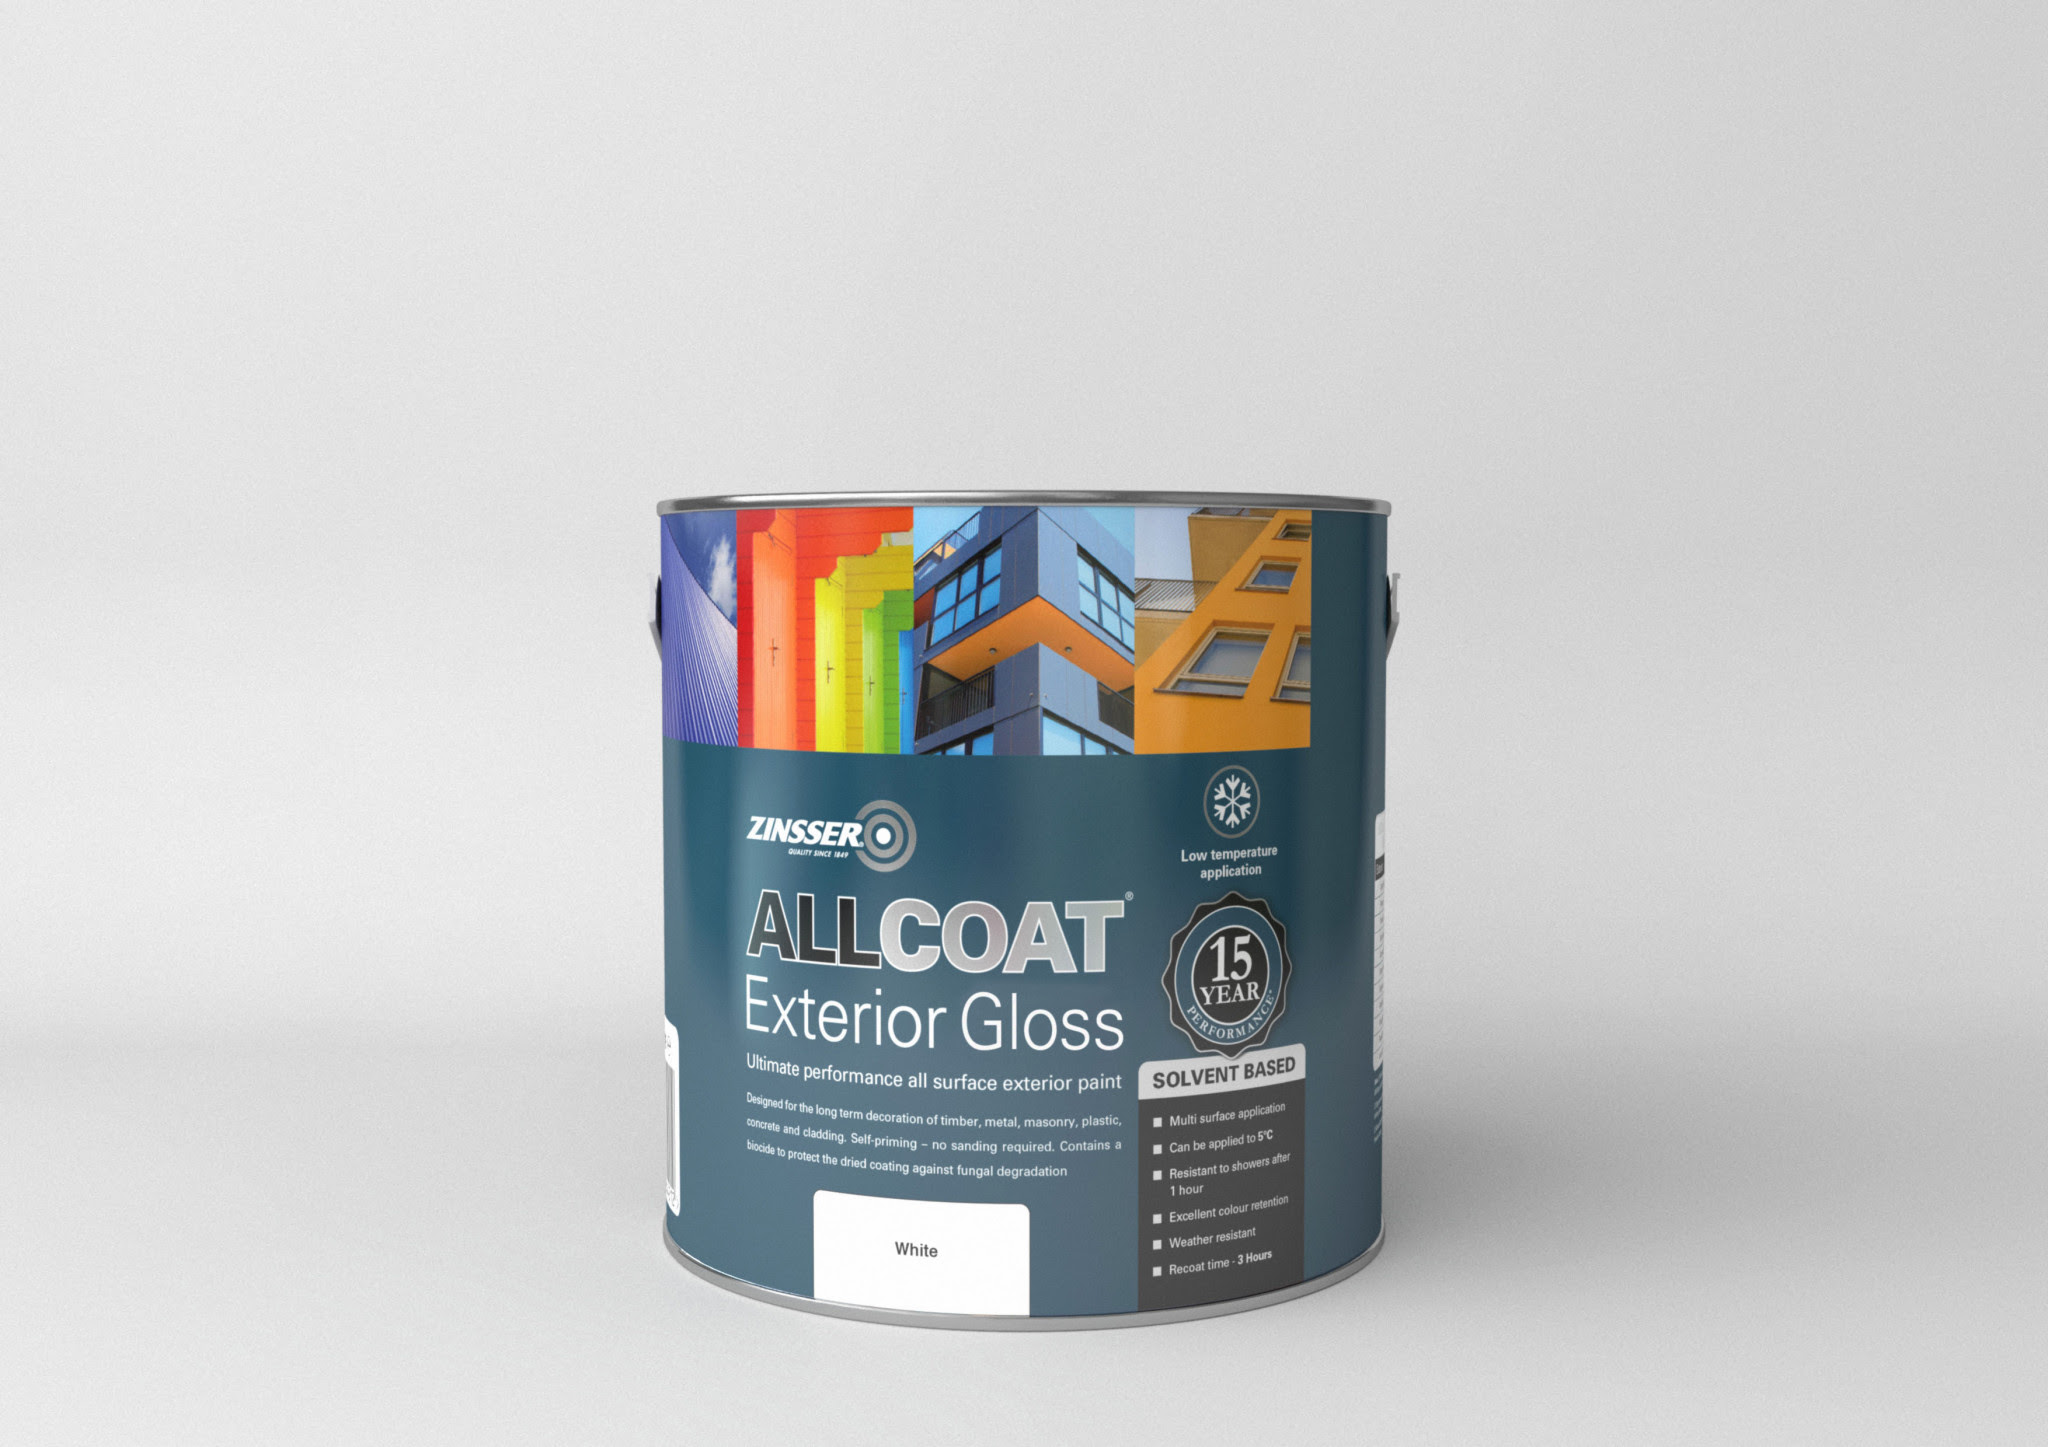 Zinsser, Perfecting Paints and Primers for 170 years